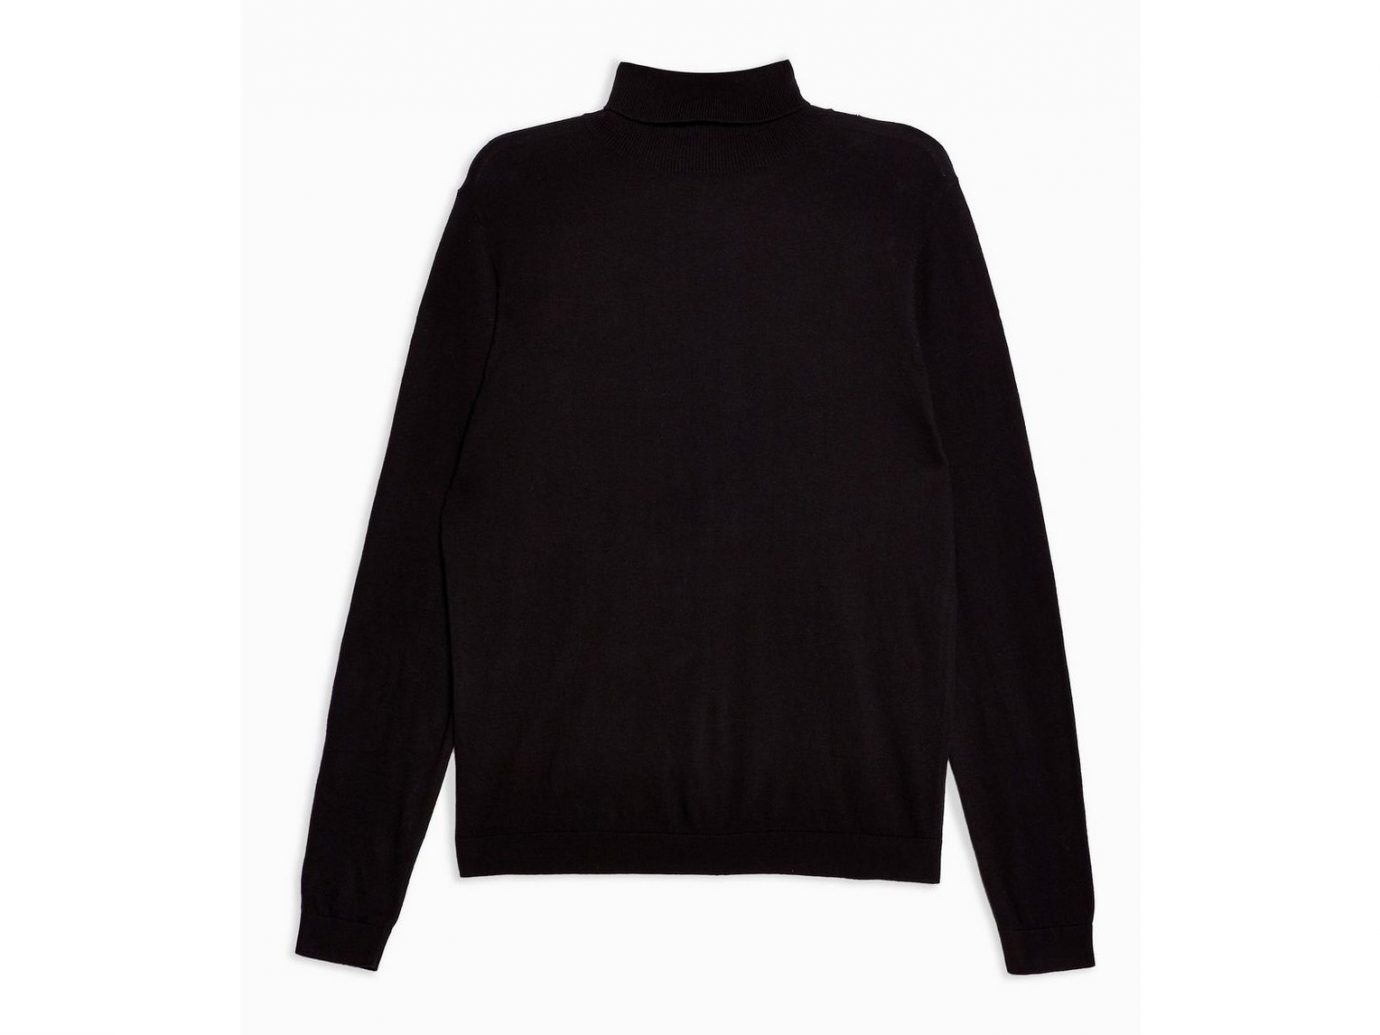 Top Man Black Turtleneck